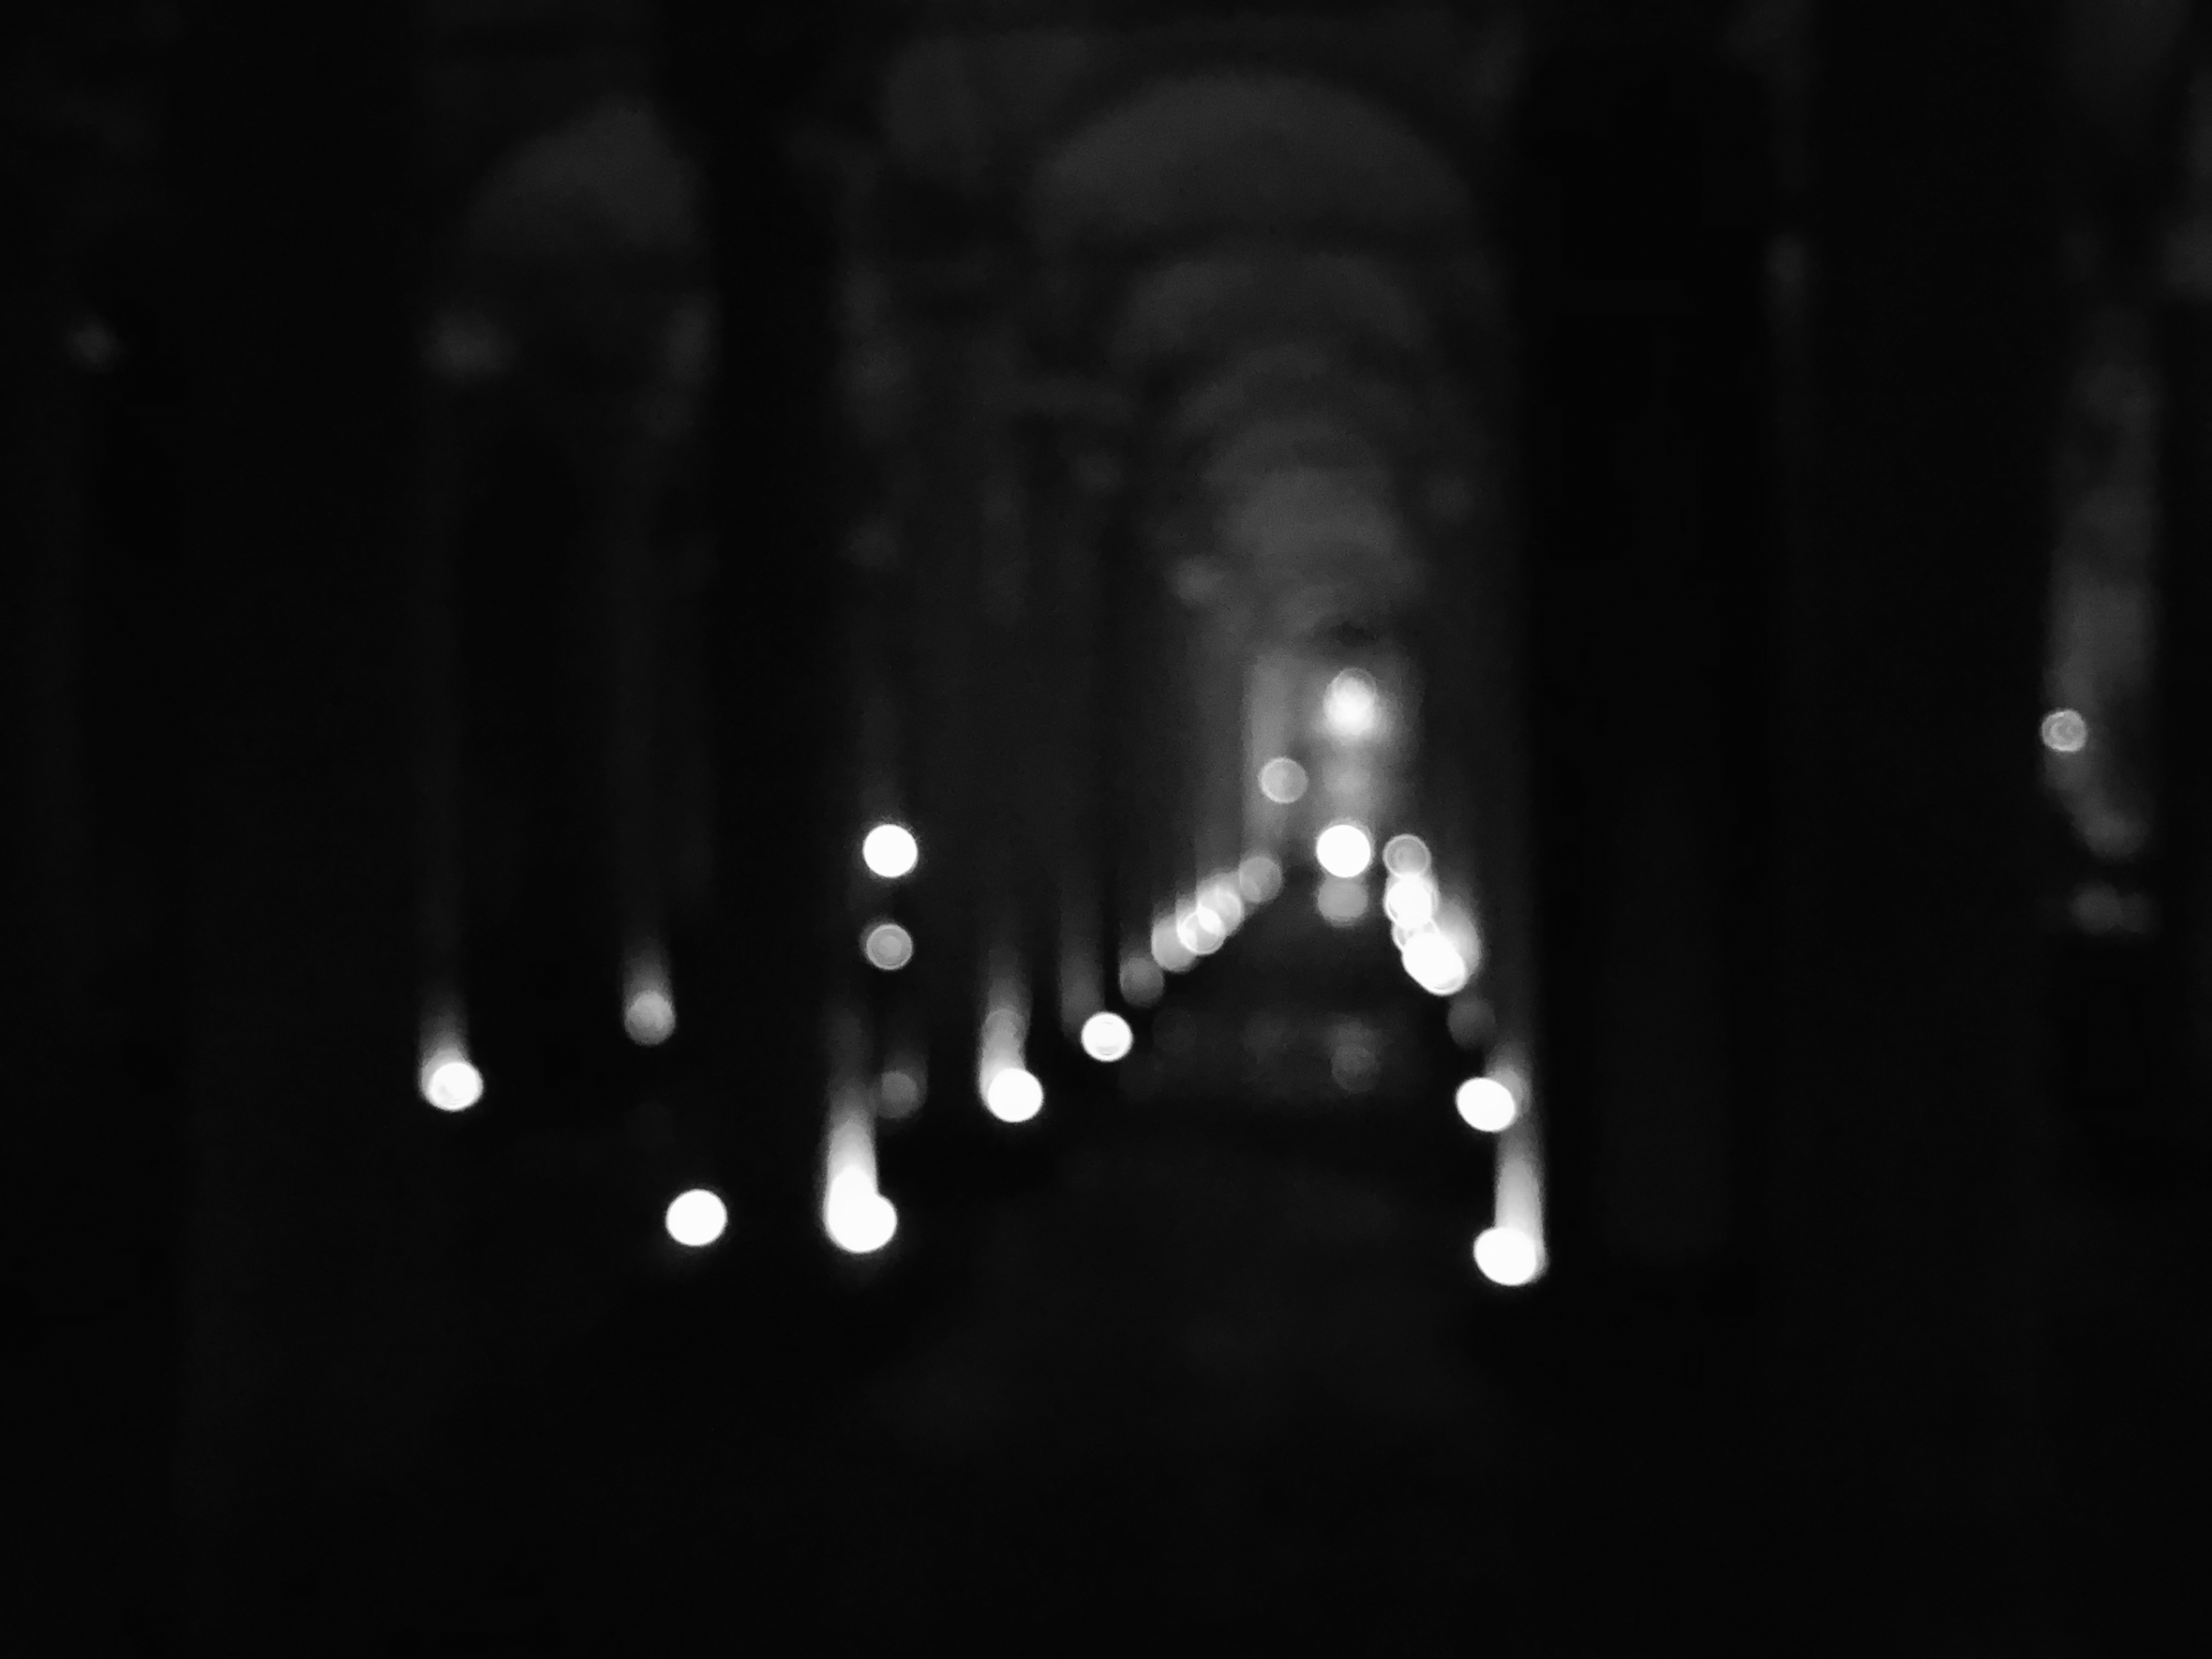 A blurry photo of what appears to be lights on either side of an aisle.